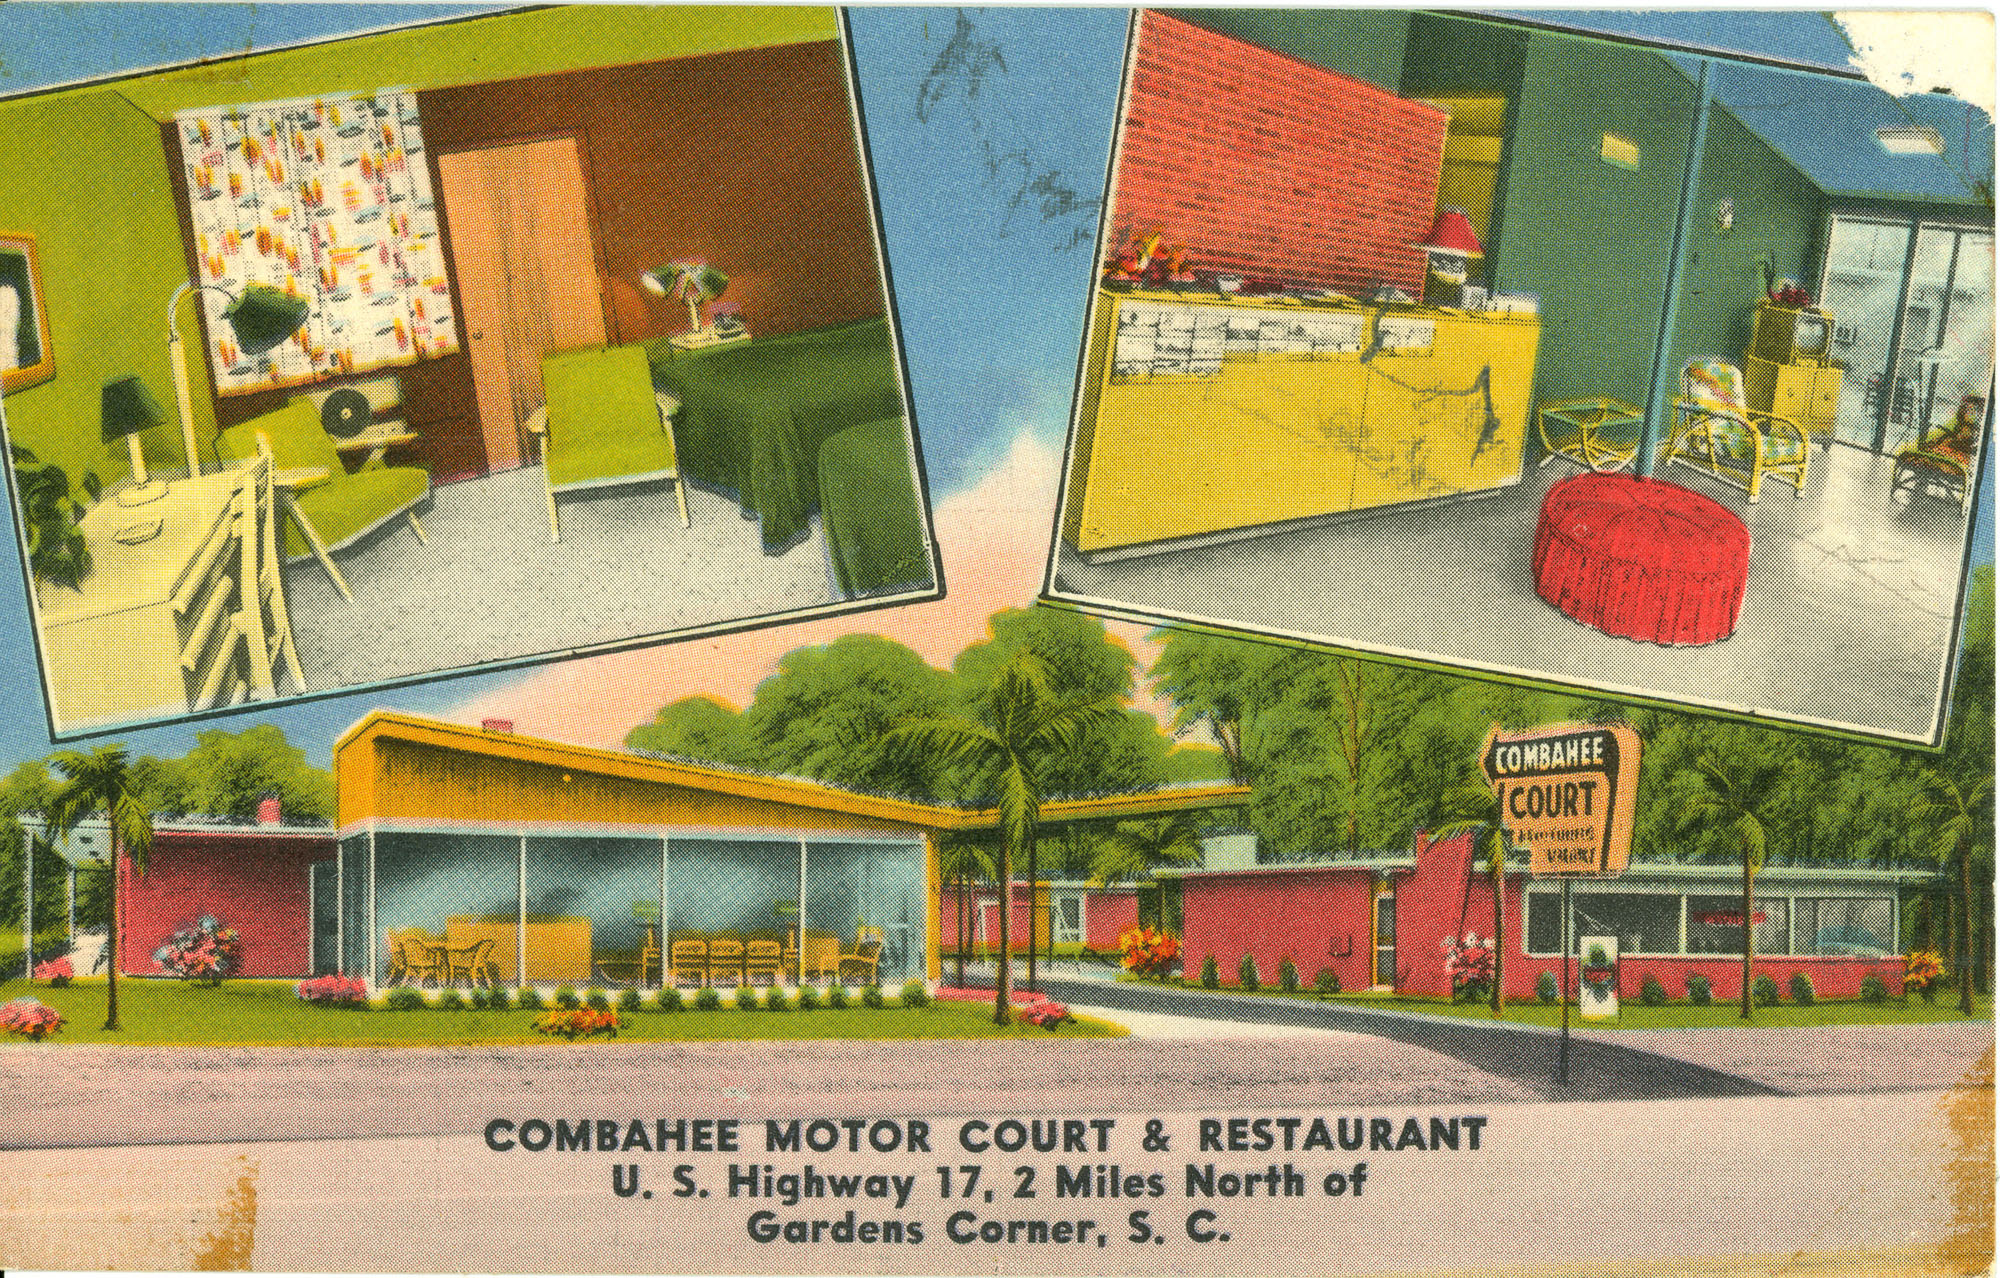 Combahee Motor Court & Restaurant. U.S. Highway 17, 2 Miles North of Gardens, S.C.